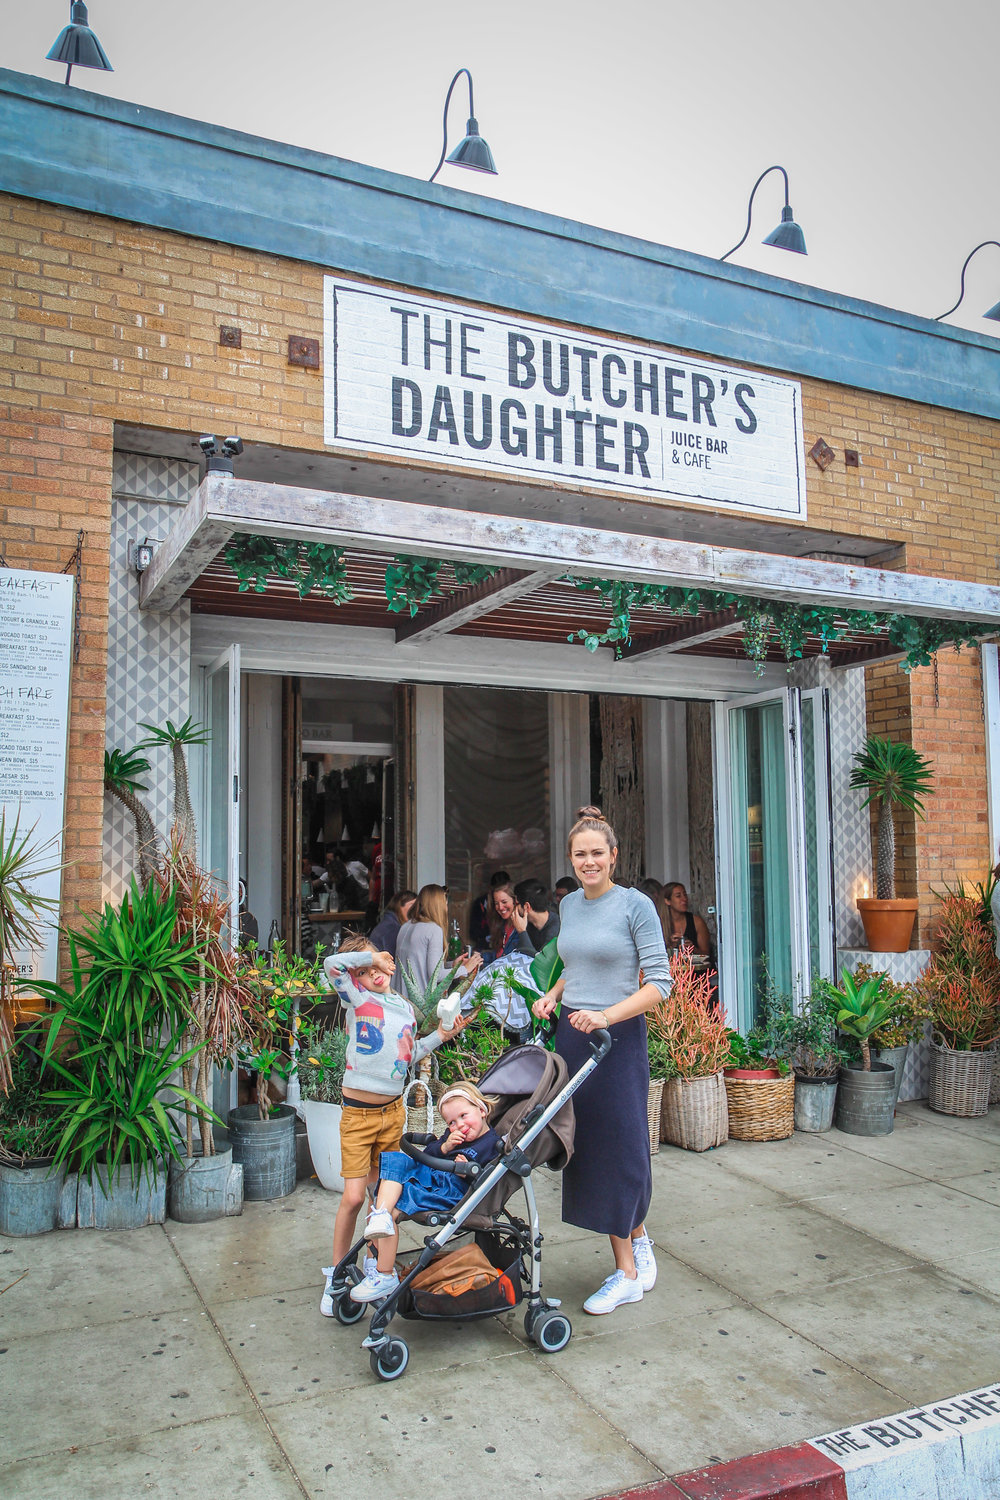 venice beach abbot Kinney road gjelina butchers daughter